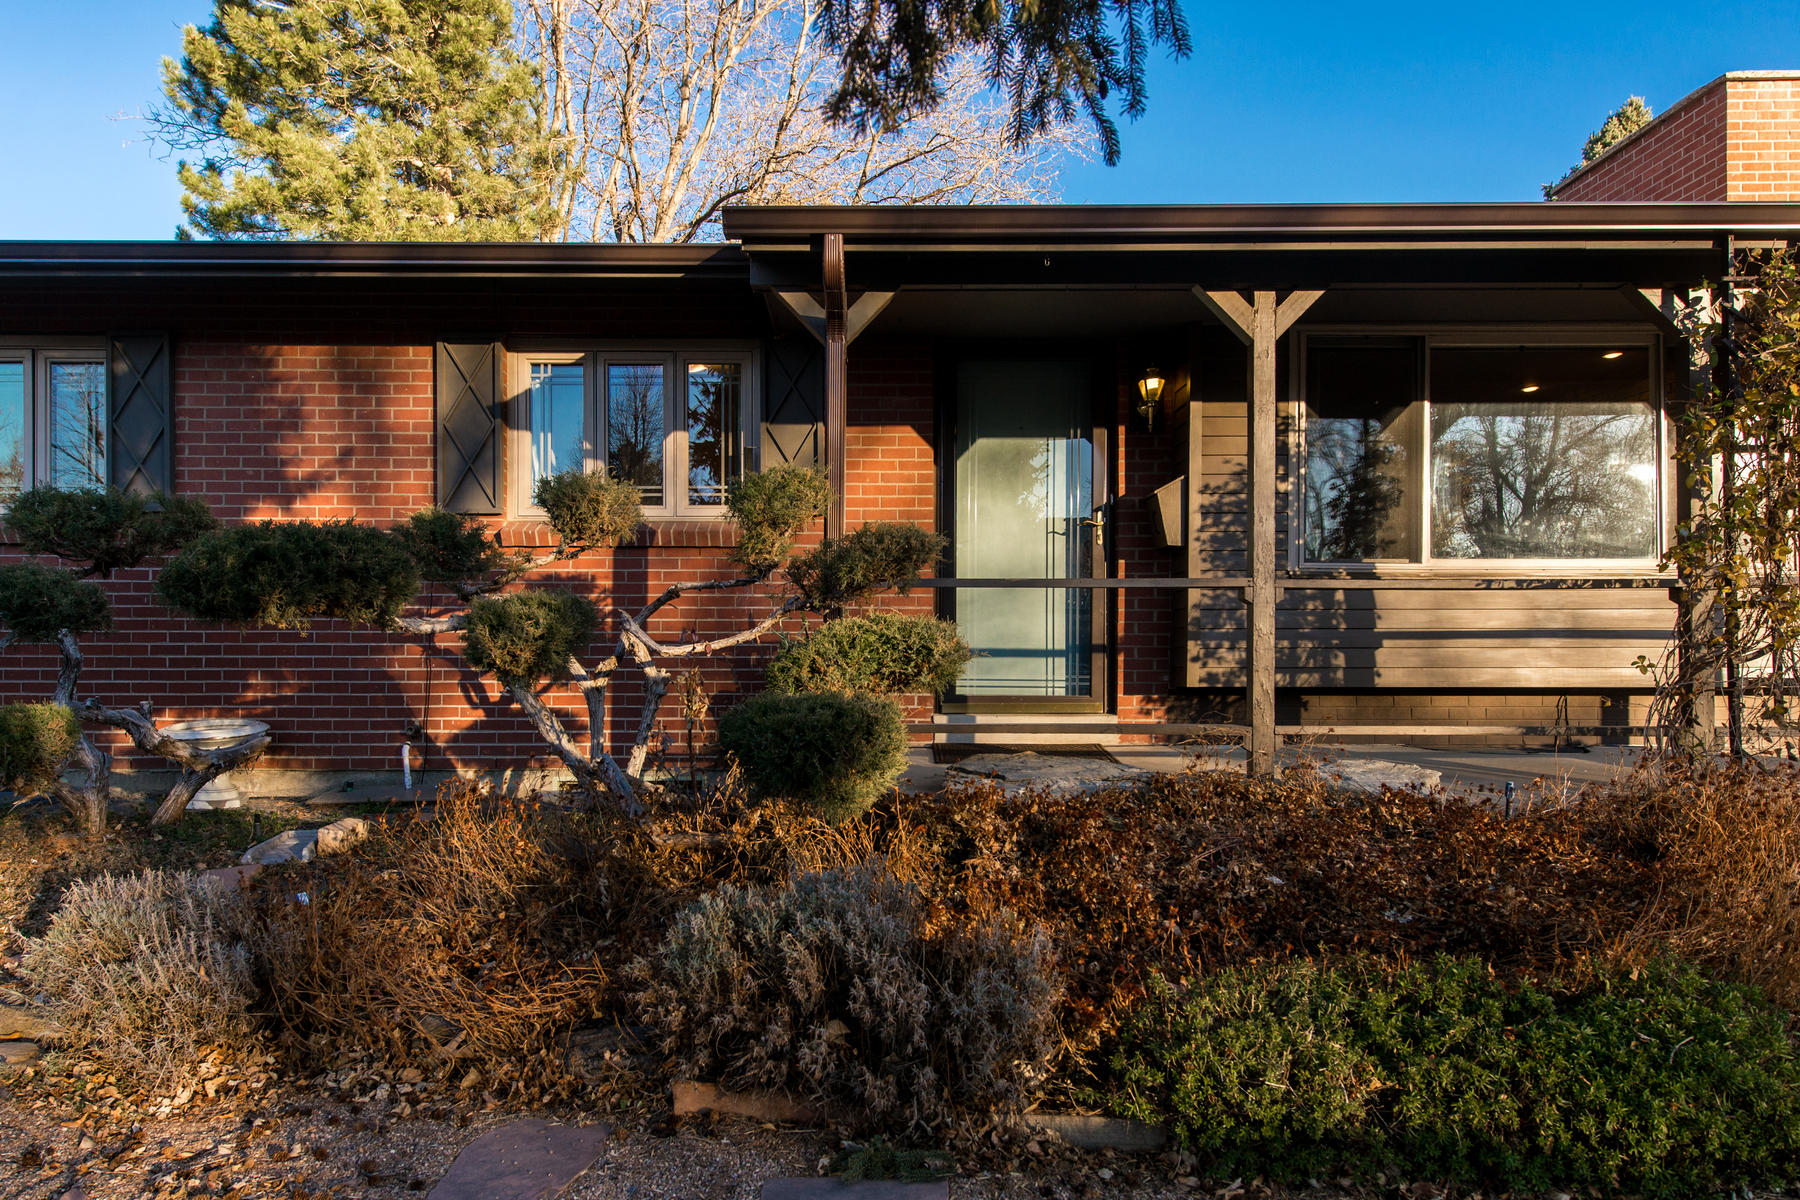 Additional photo for property listing at This classic brick ranch in Applewood, Golden is a must see! 13436 W 22nd Place Golden, Colorado 80401 United States